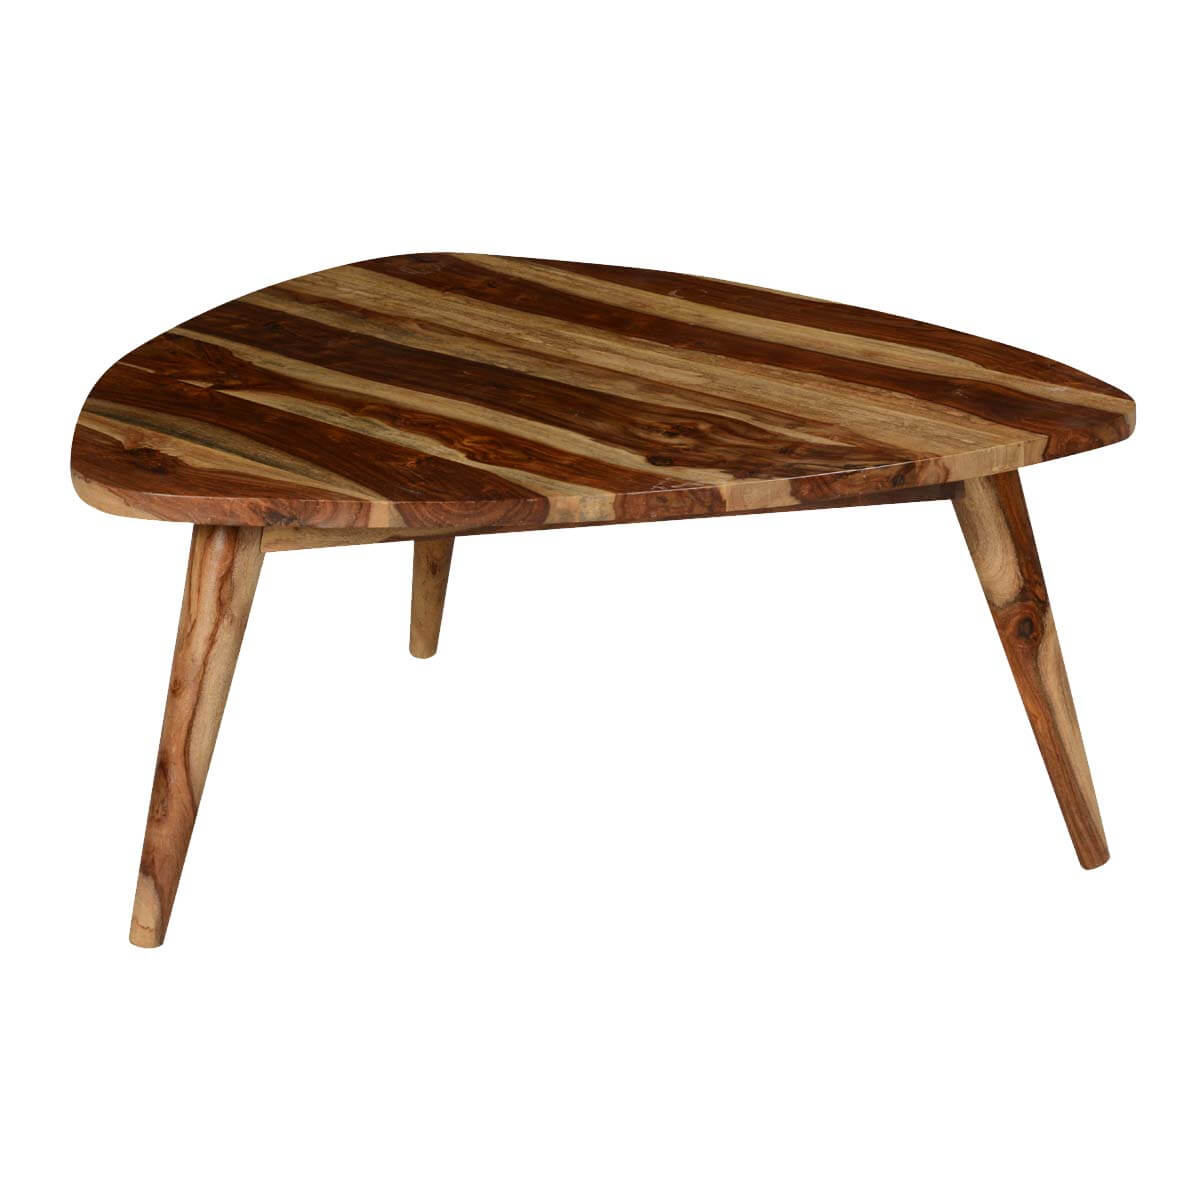 Triangular Solid Wood Coffee Table